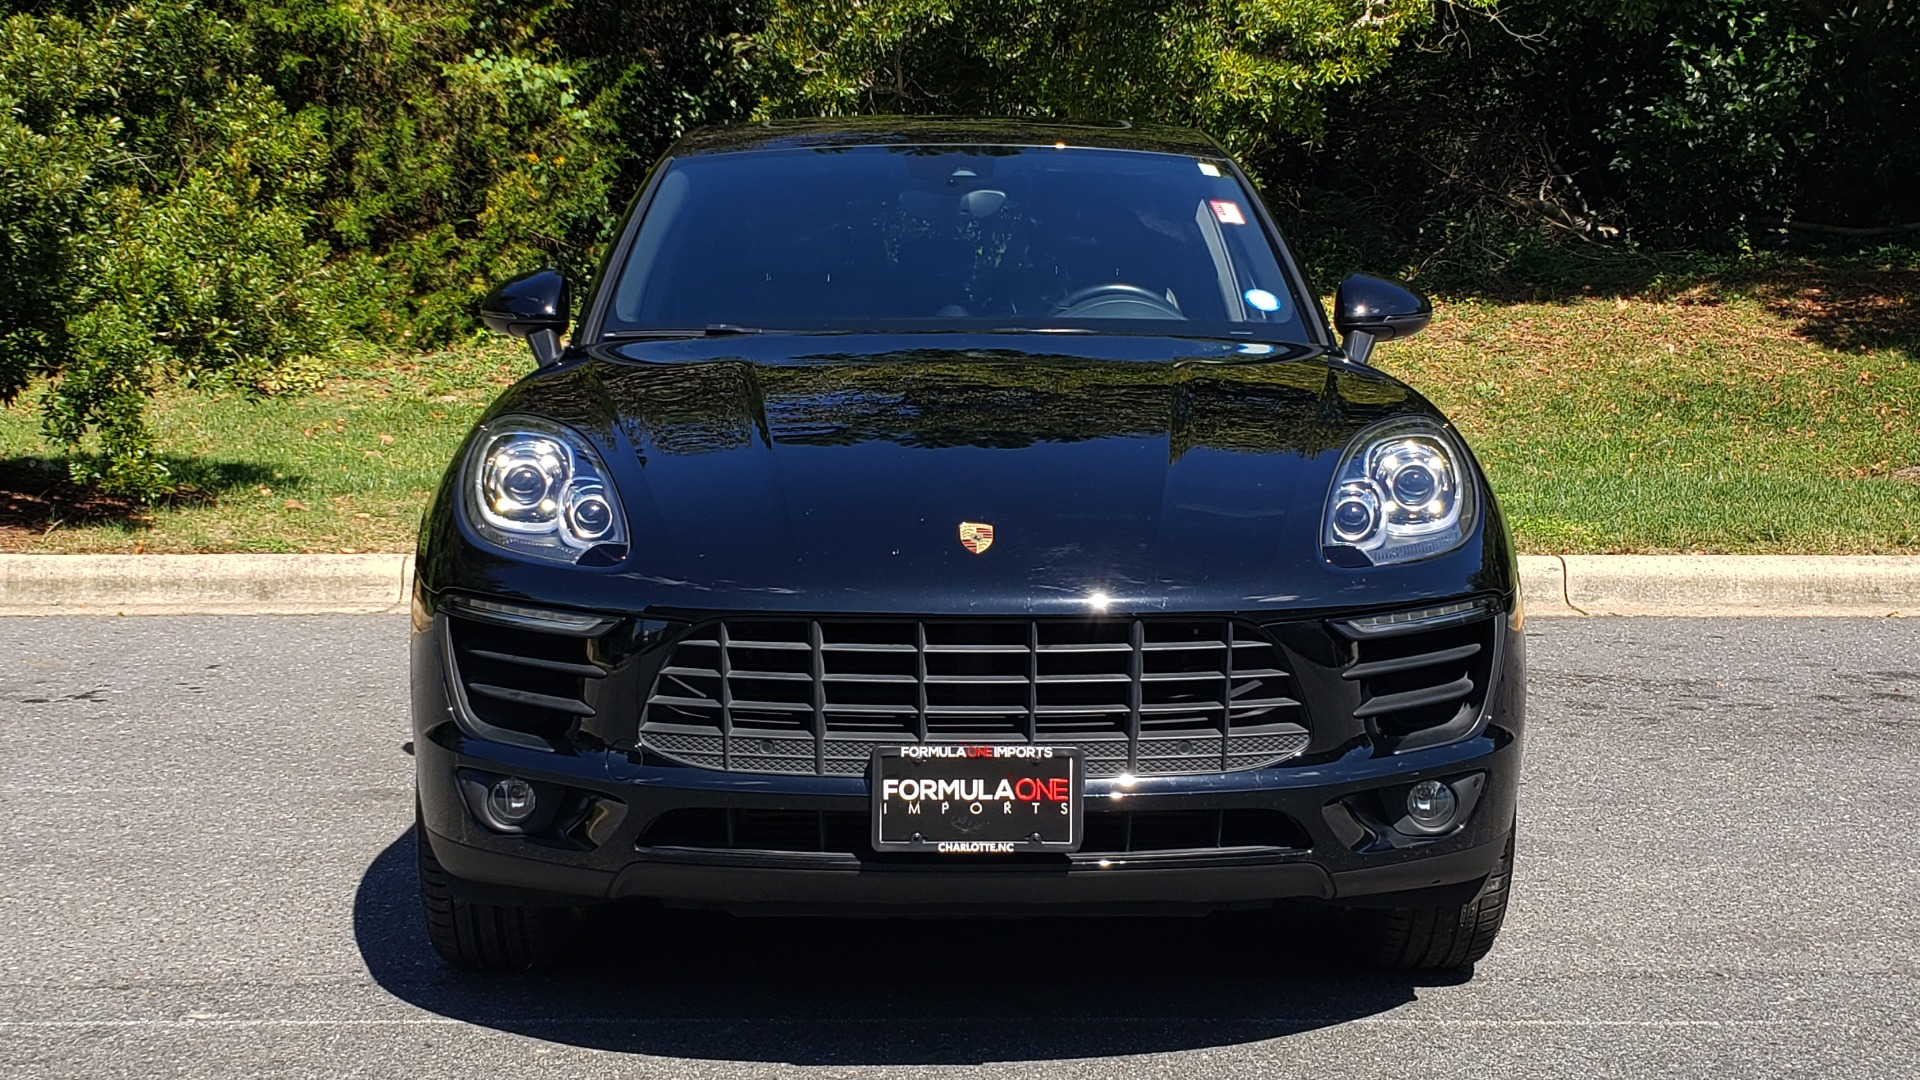 Used 2018 Porsche MACAN PREMIUM PKG PLUS / NAV / PDK / BOSE / REARVIEW for sale Sold at Formula Imports in Charlotte NC 28227 23